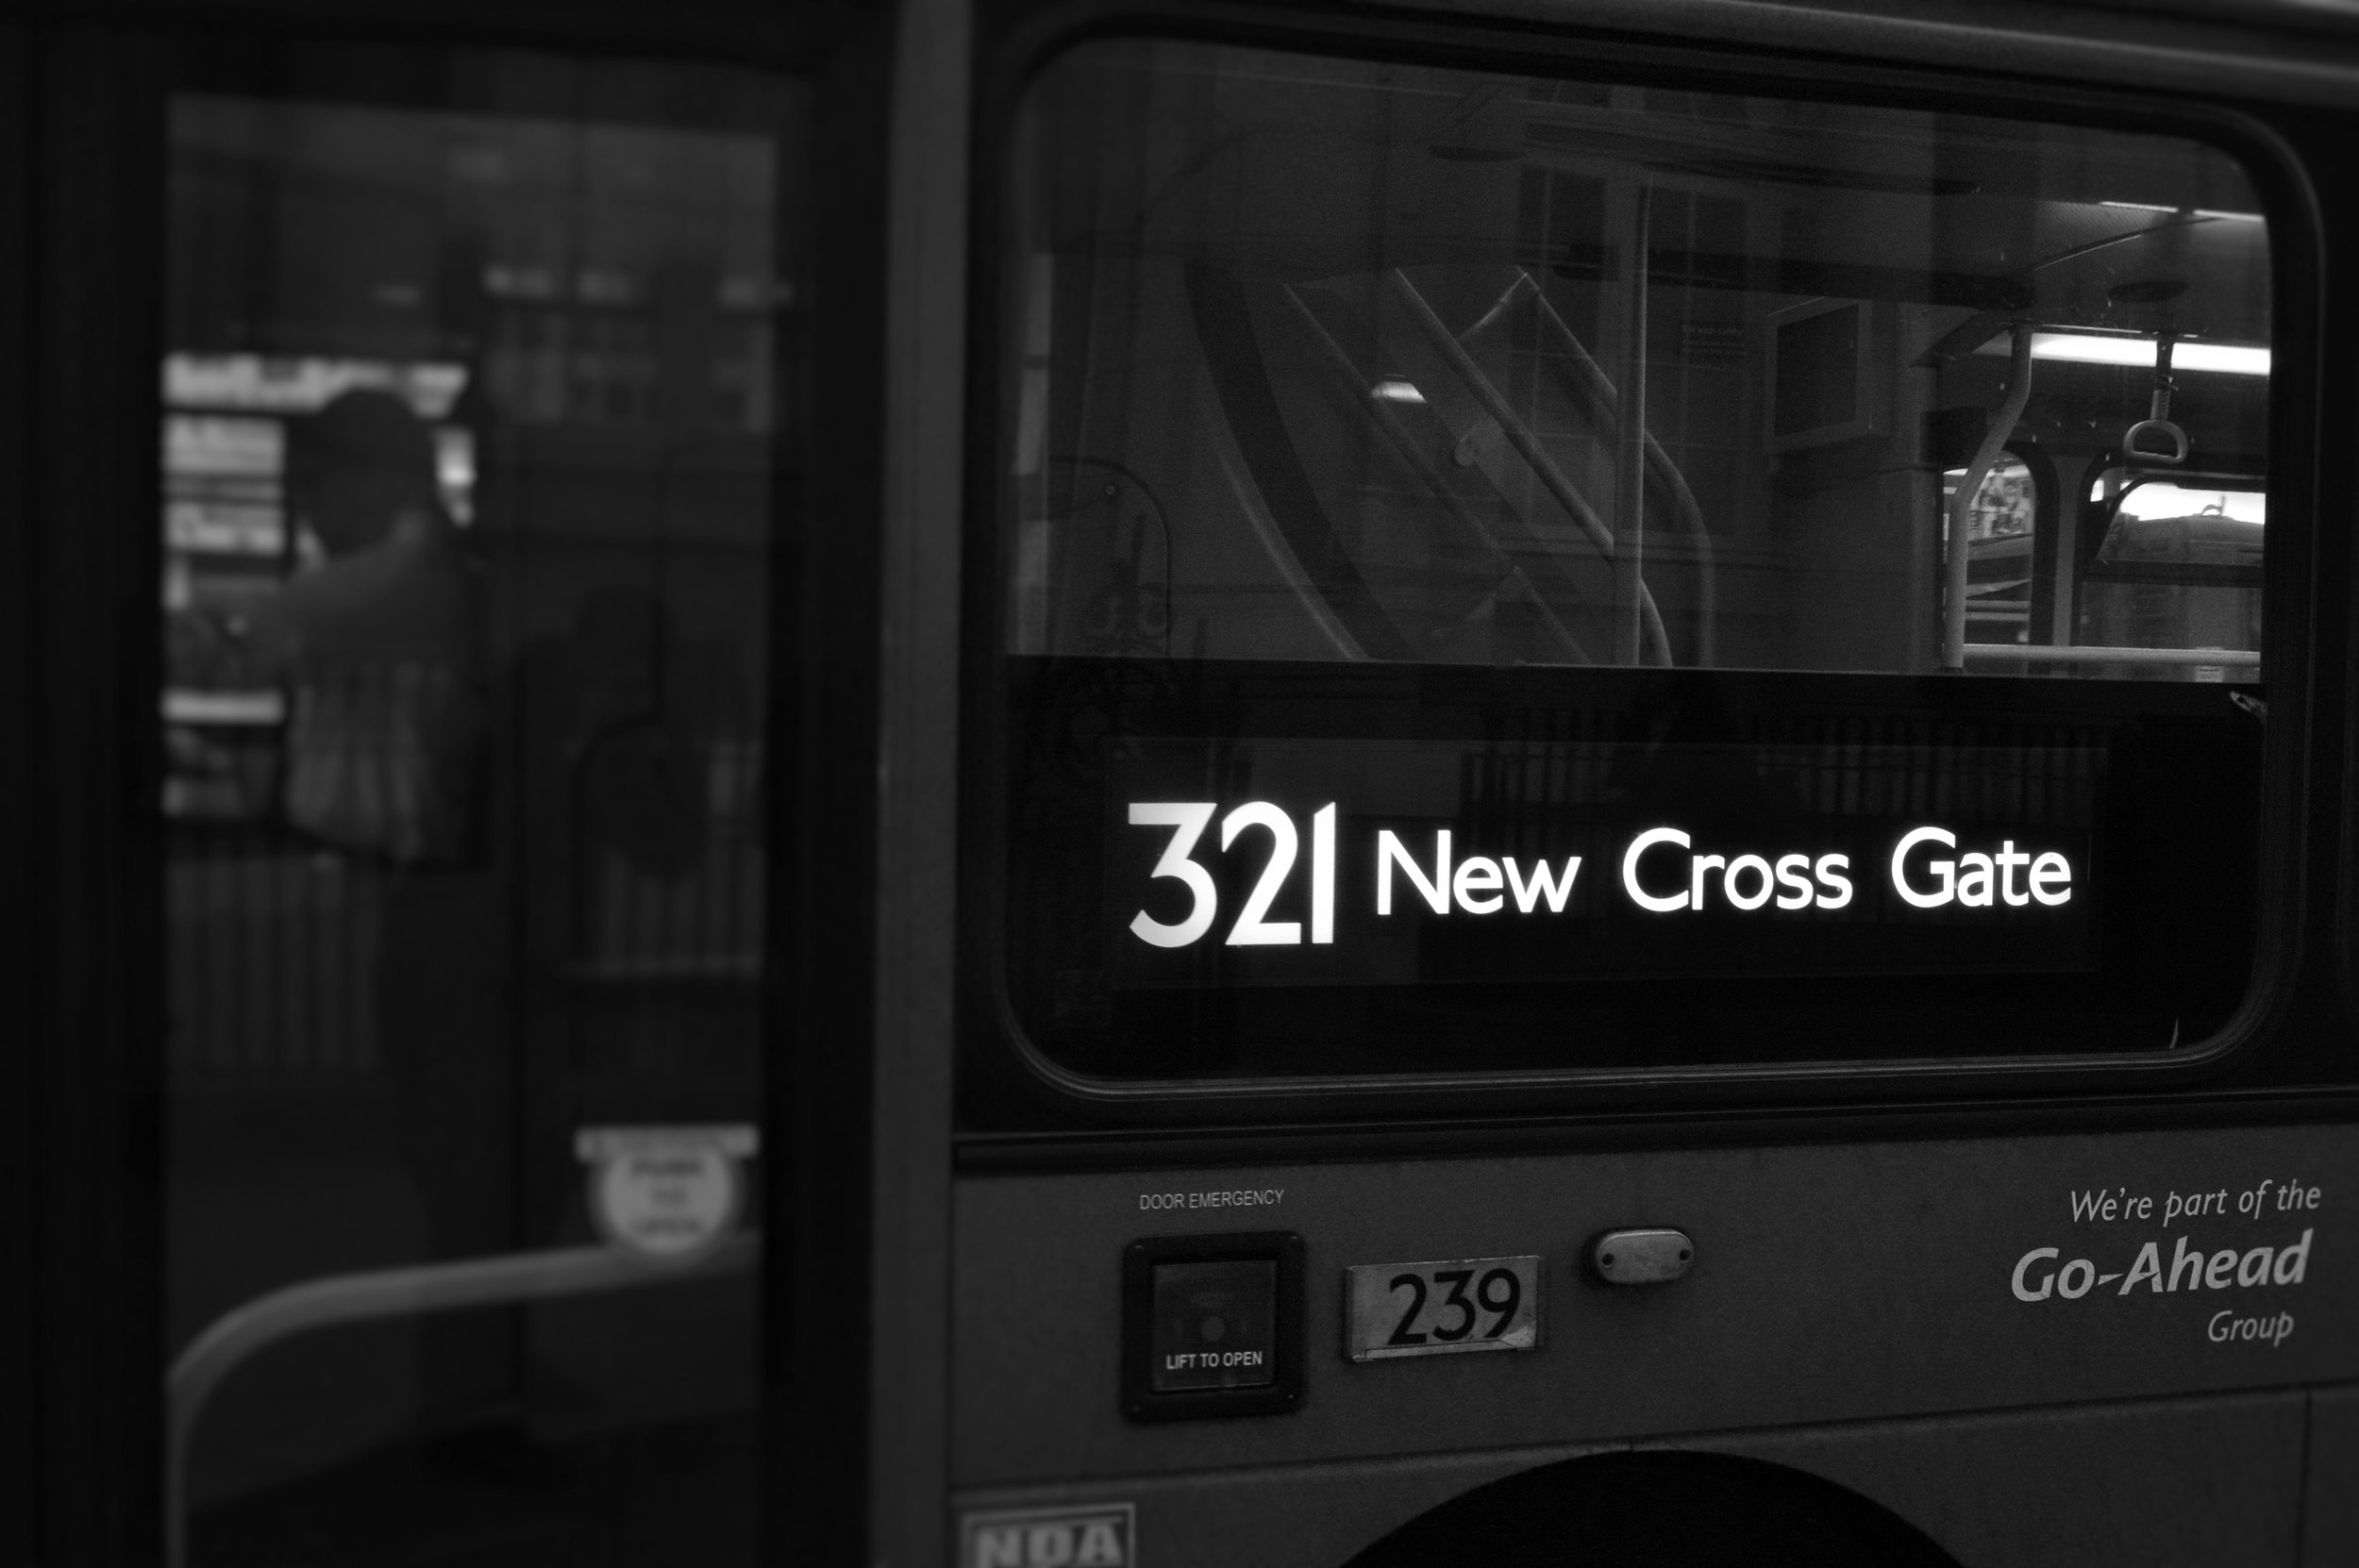 Callum.Malcolm-Kelly_321 to New Cross Gate.JPG